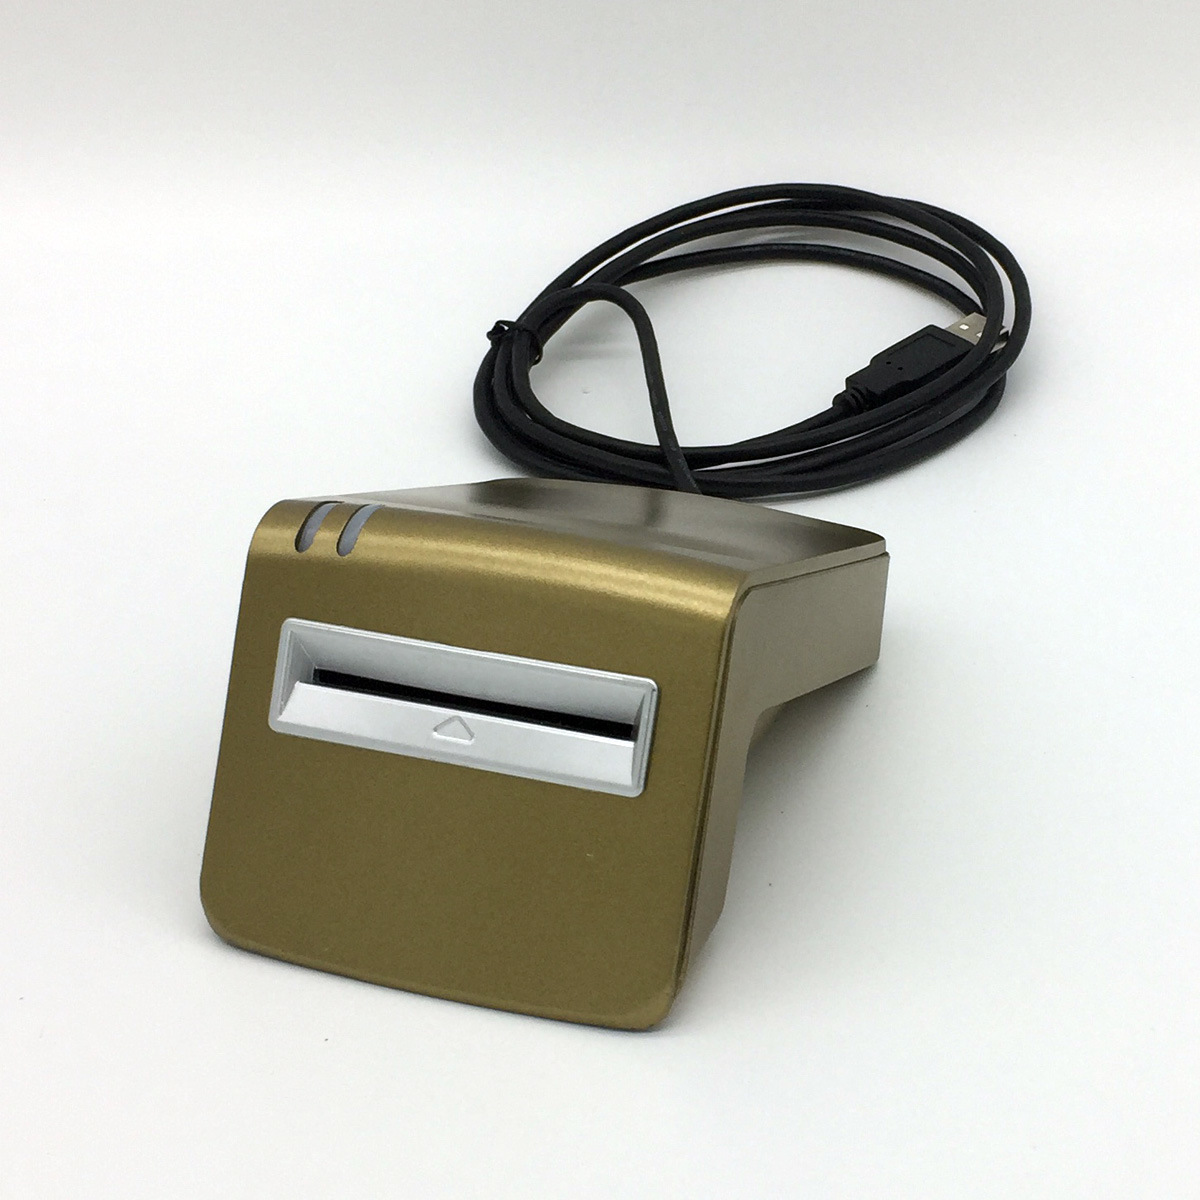 Dtsy-2D Single Phase Kwh Meter